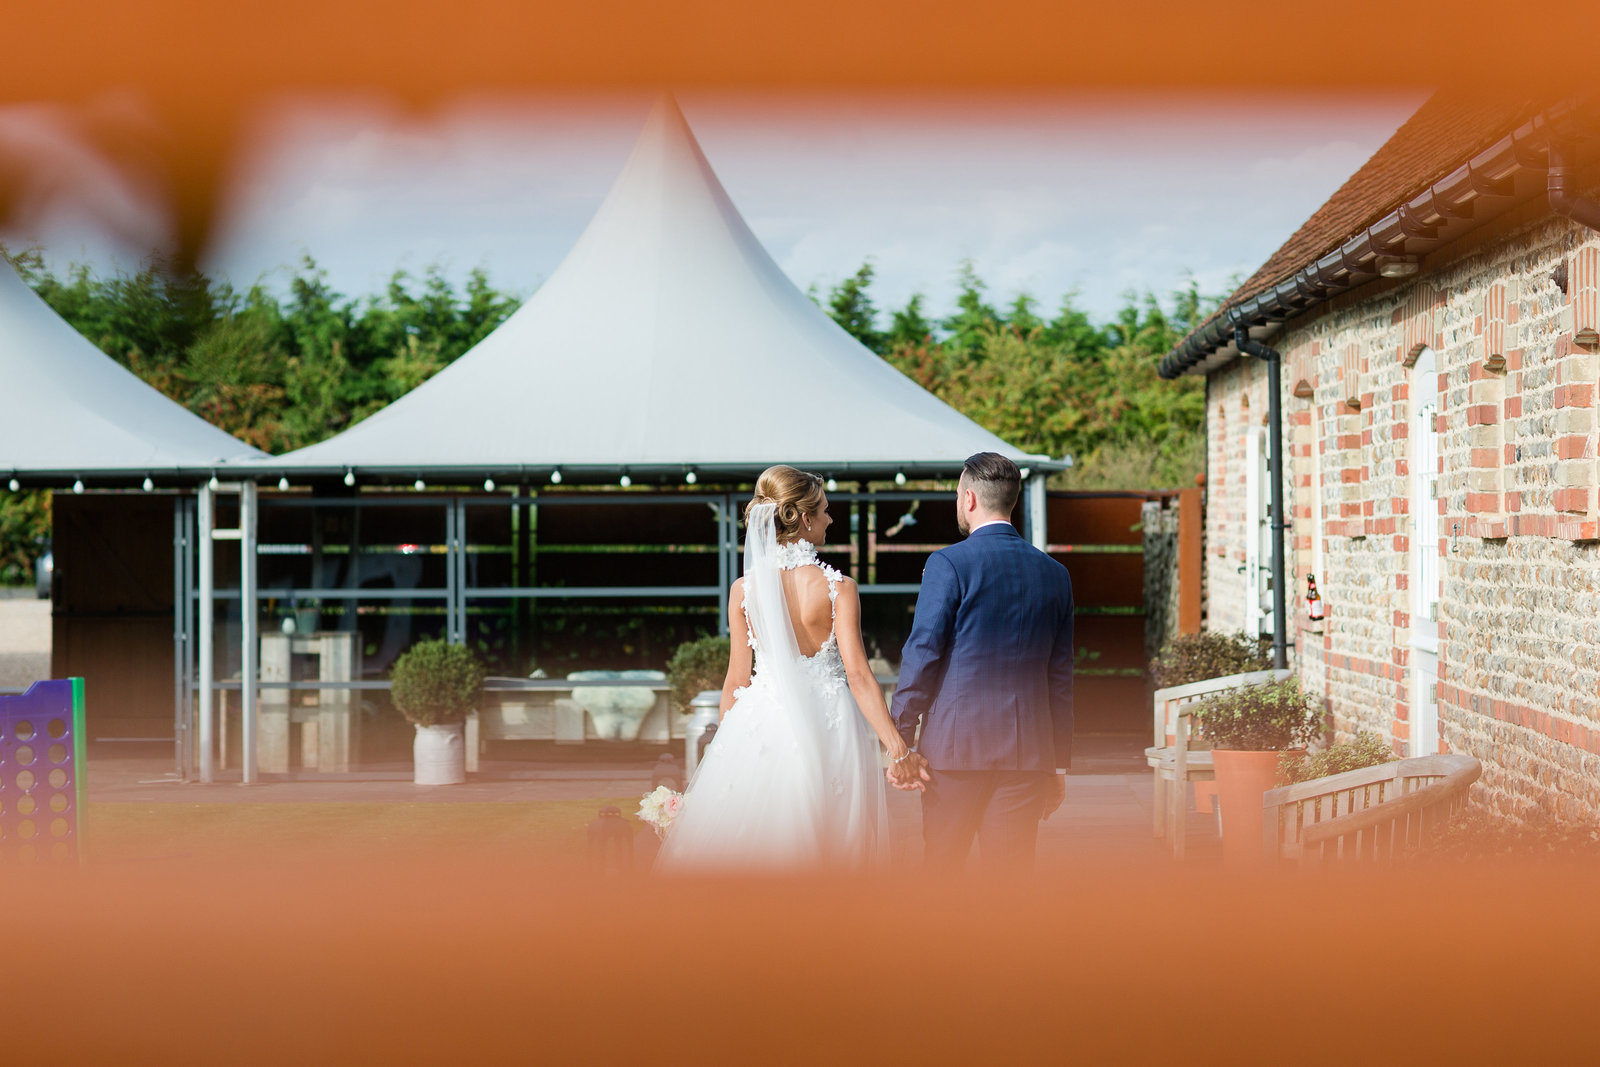 adorlee-0293-southend-barns-wedding-photographer-chichester-west-sussex